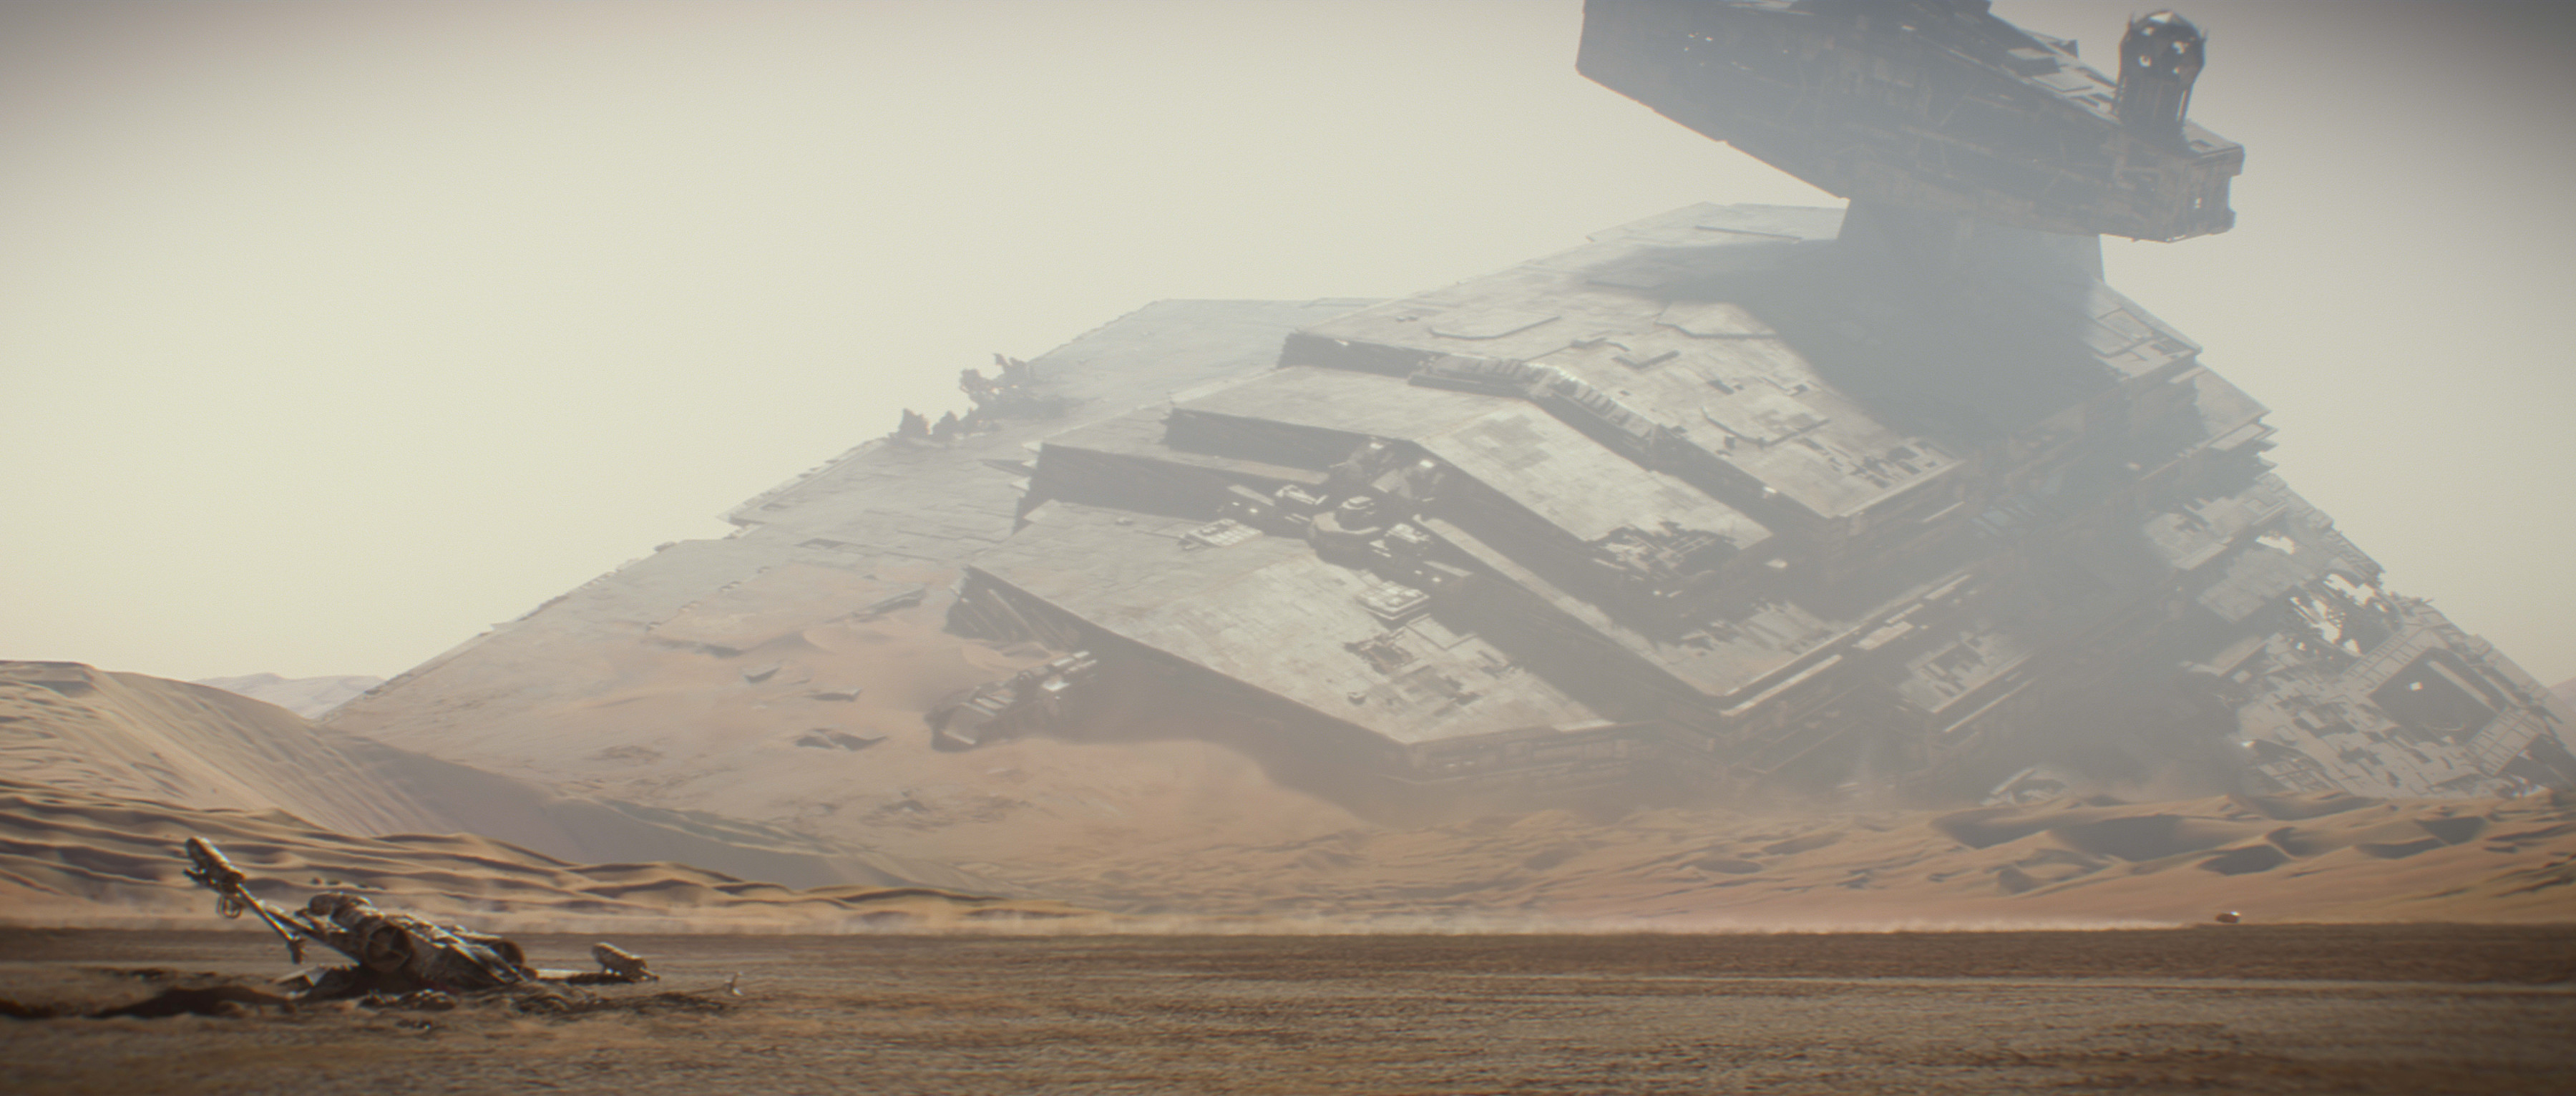 Why the Star Destroyer looks different in the Rogue One: A Star Wars Story  trailer